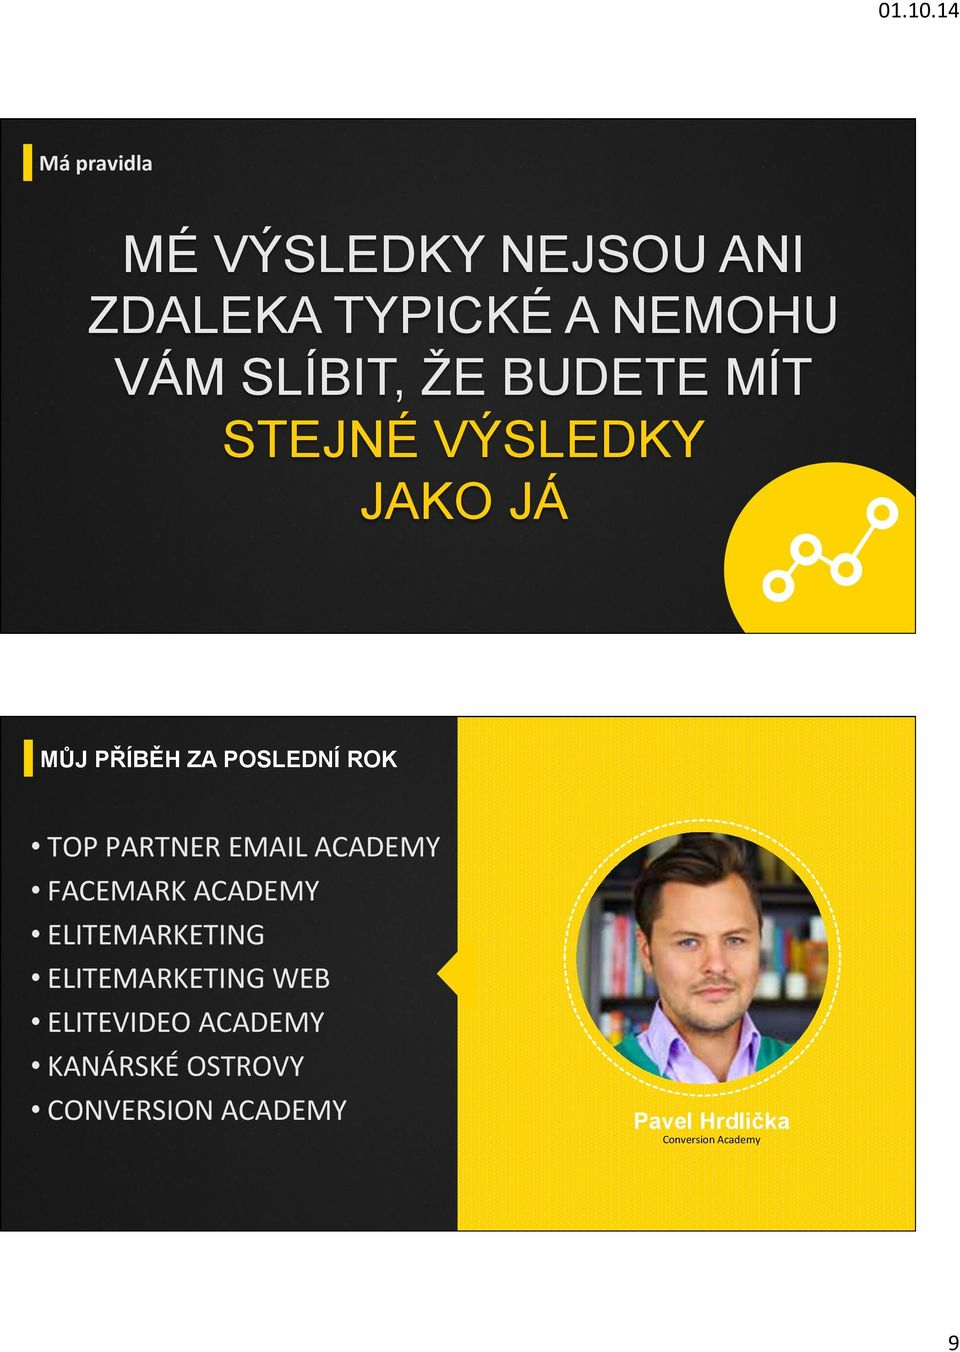 EMAIL ACADEMY FACEMARK ACADEMY ELITEMARKETING ELITEMARKETING WEB ELITEVIDEO